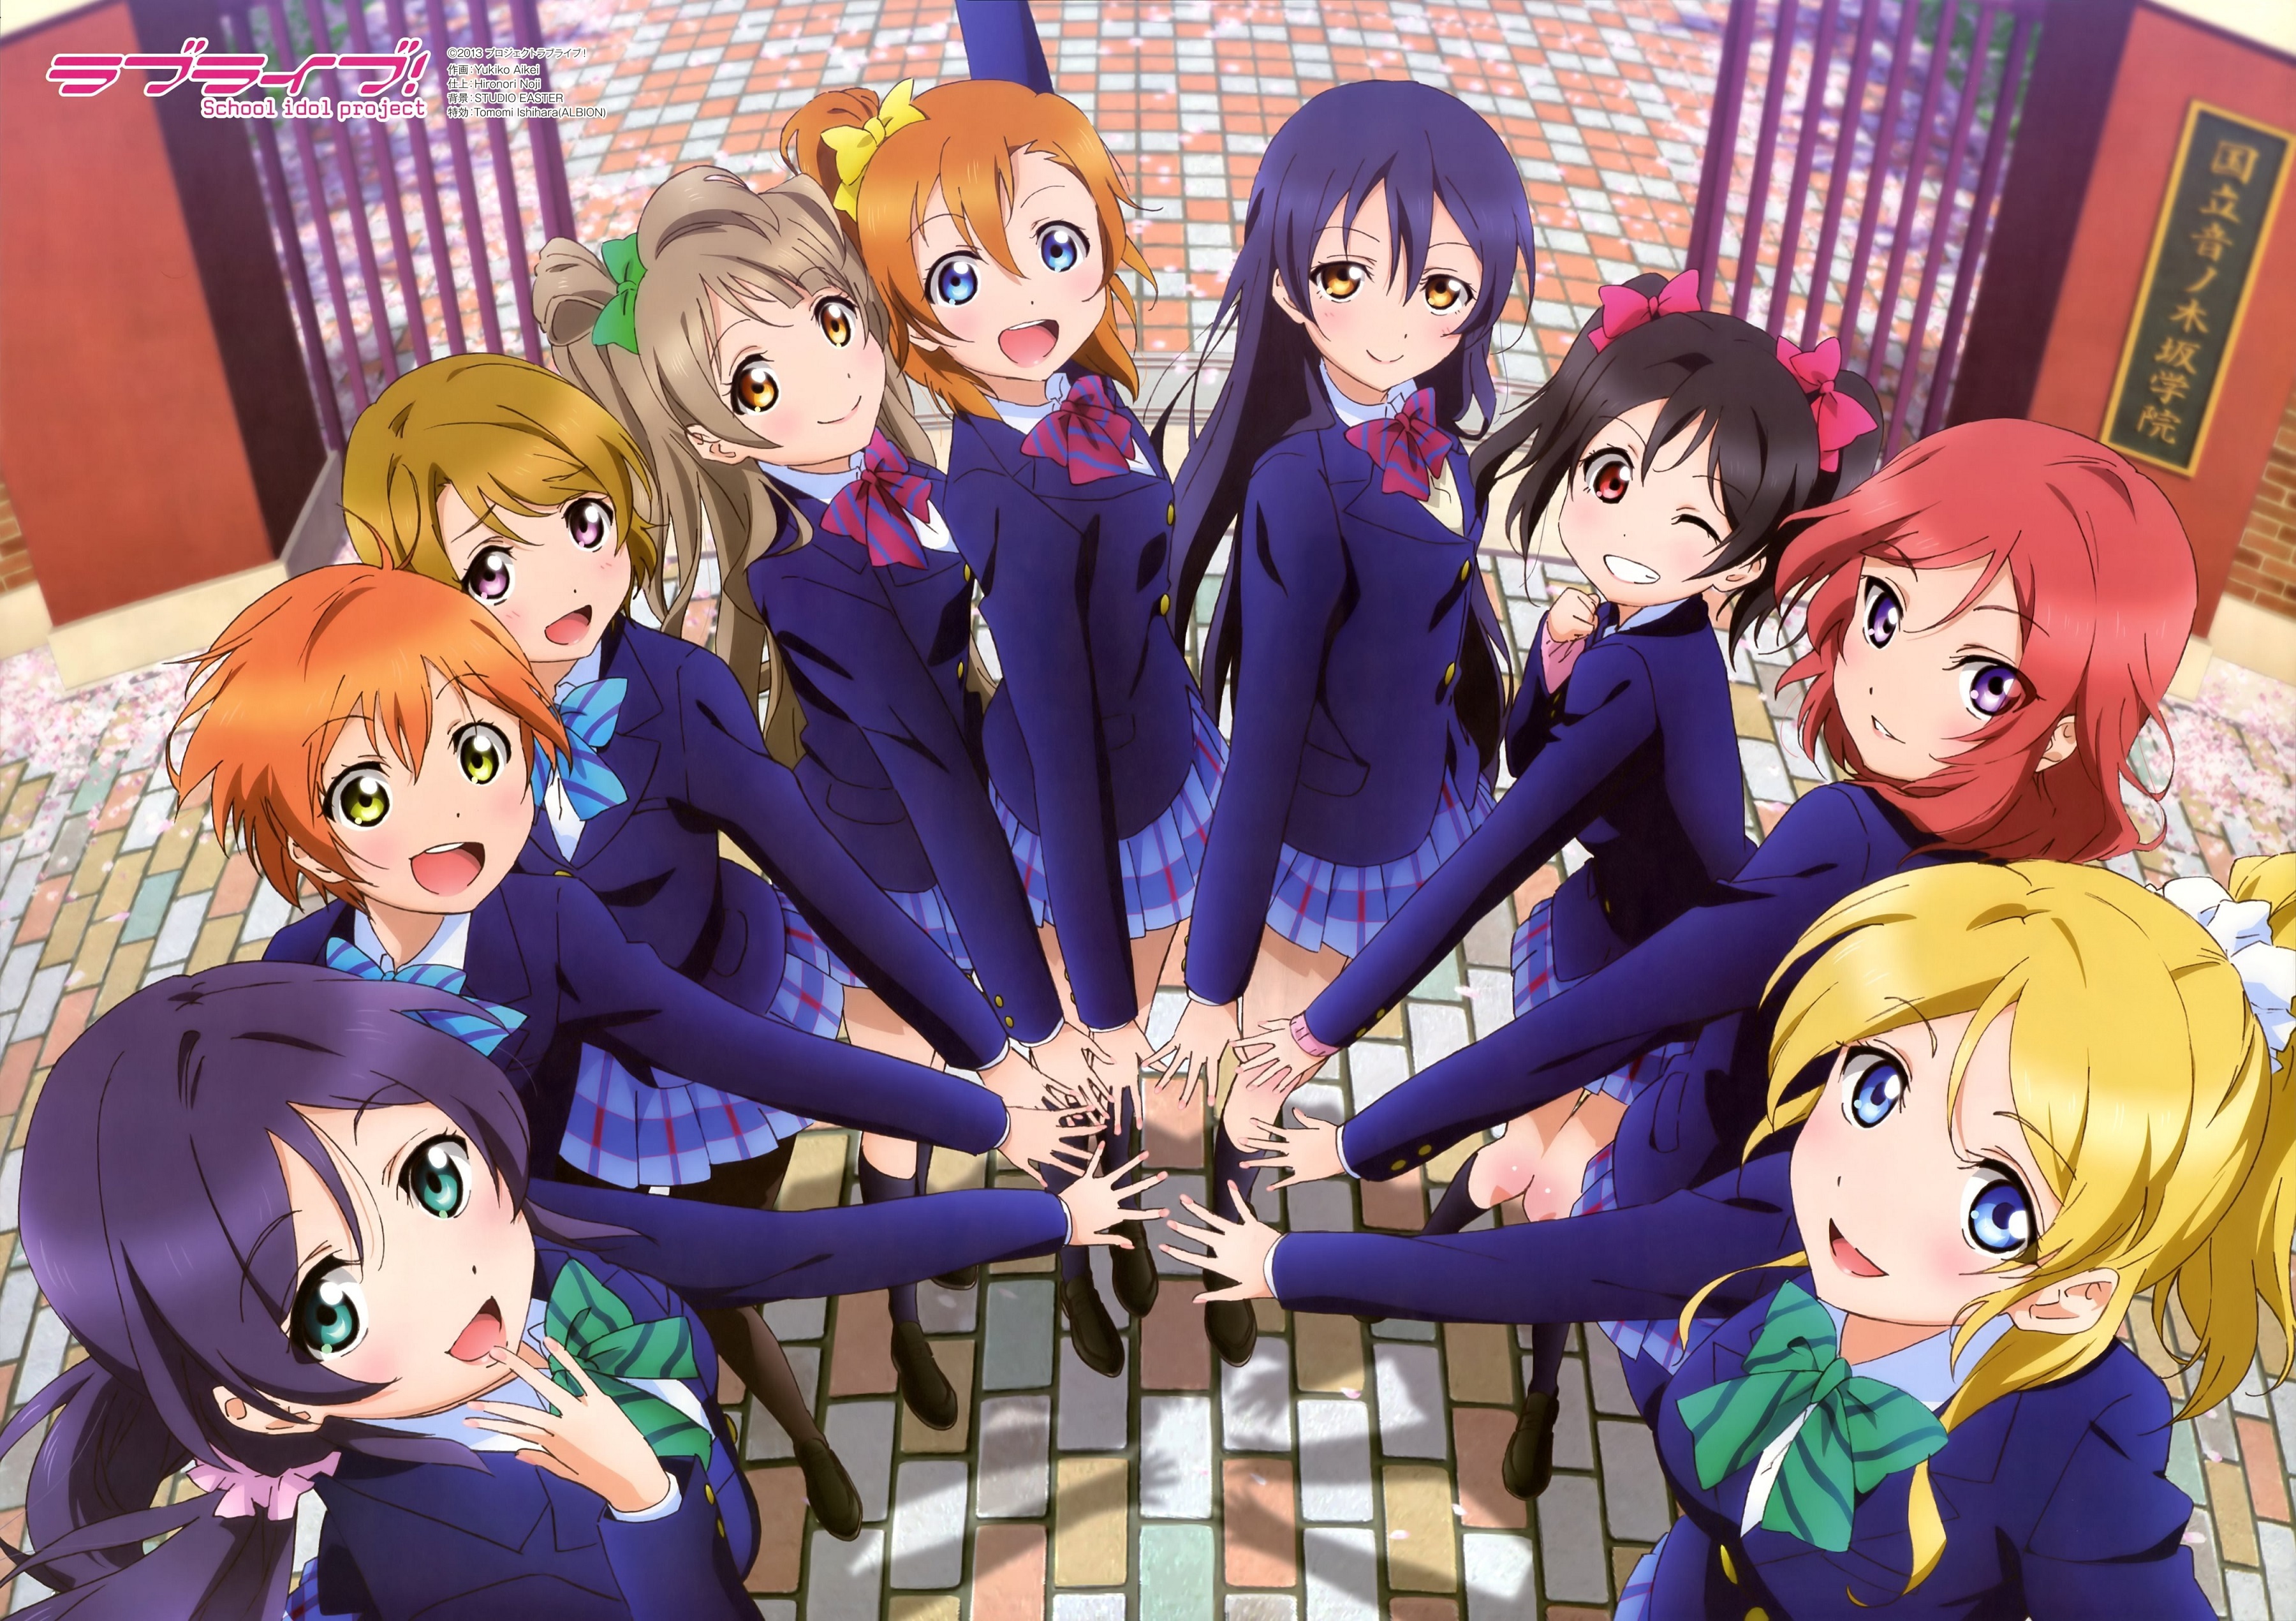 Love Live 's performs TWICE song